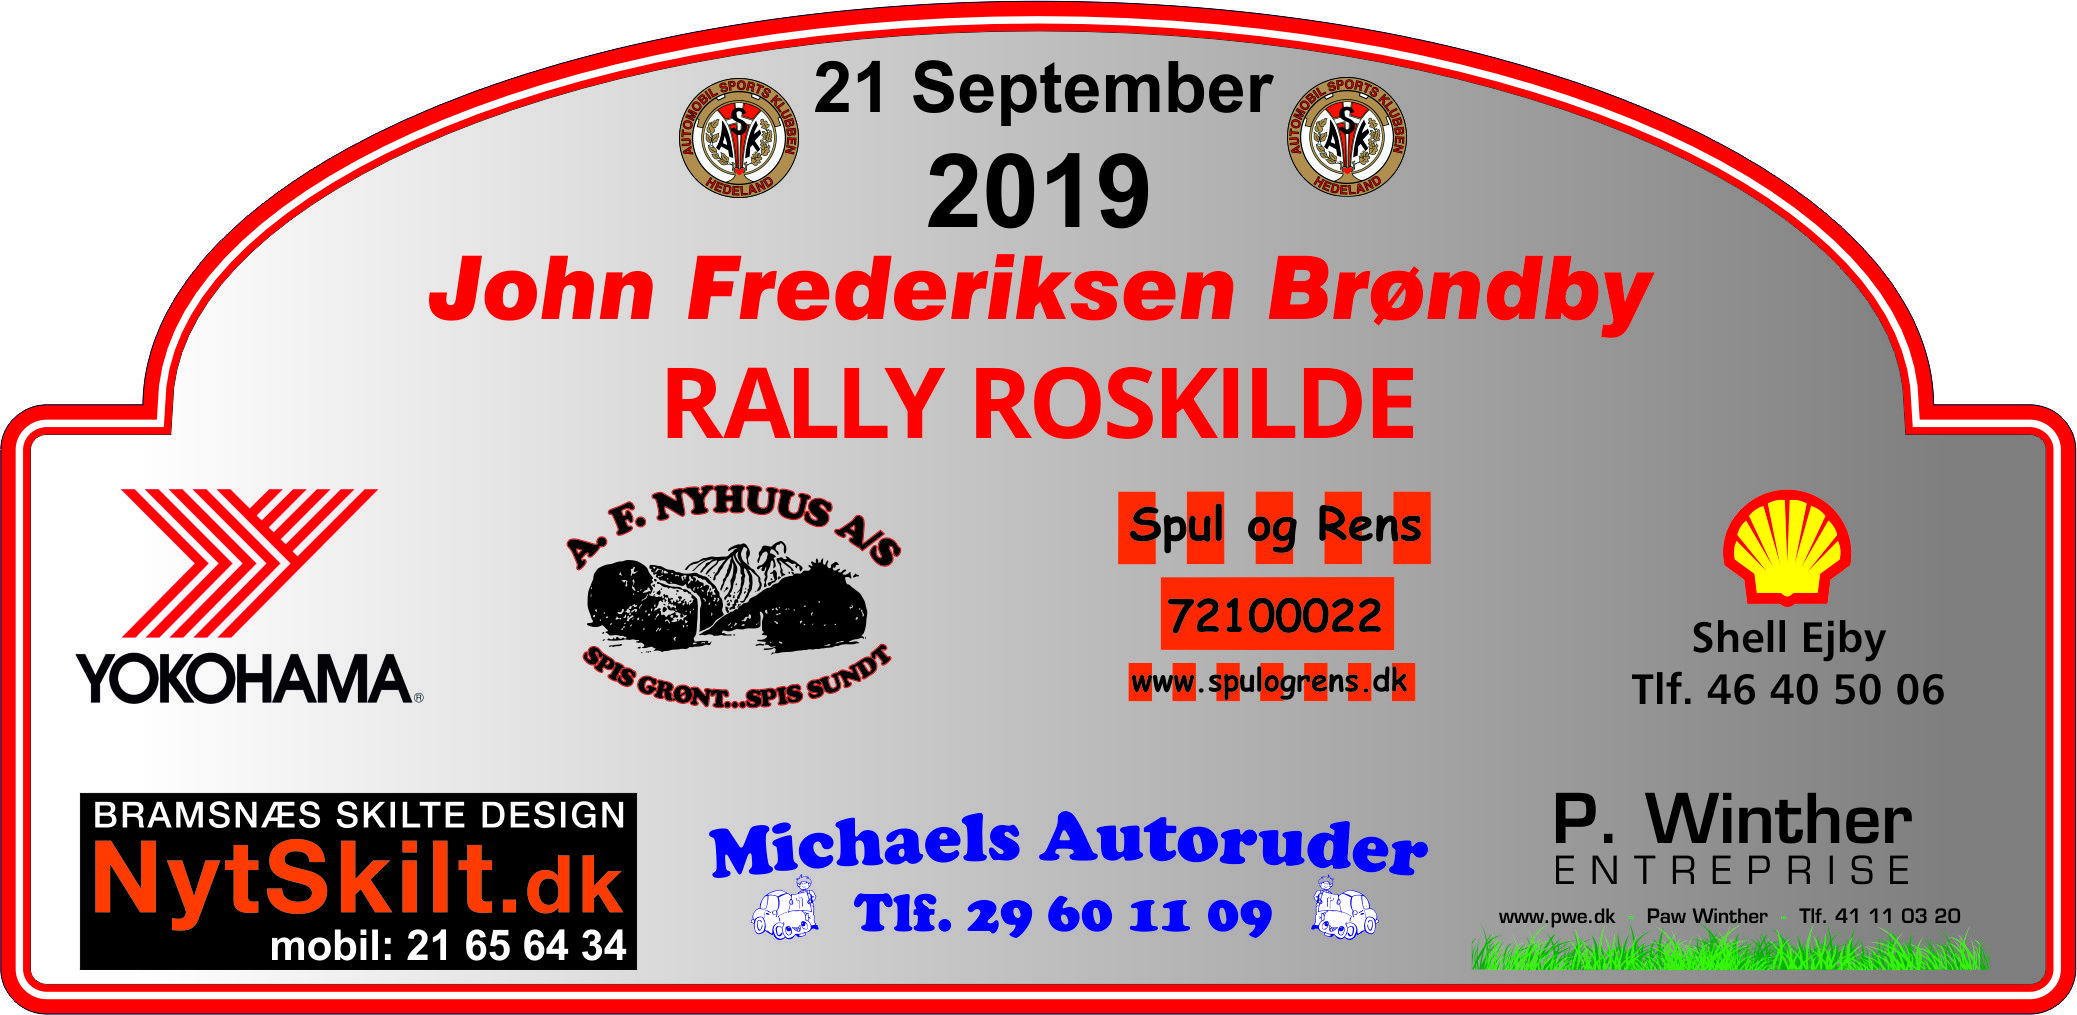 Rally Roskilde 2019